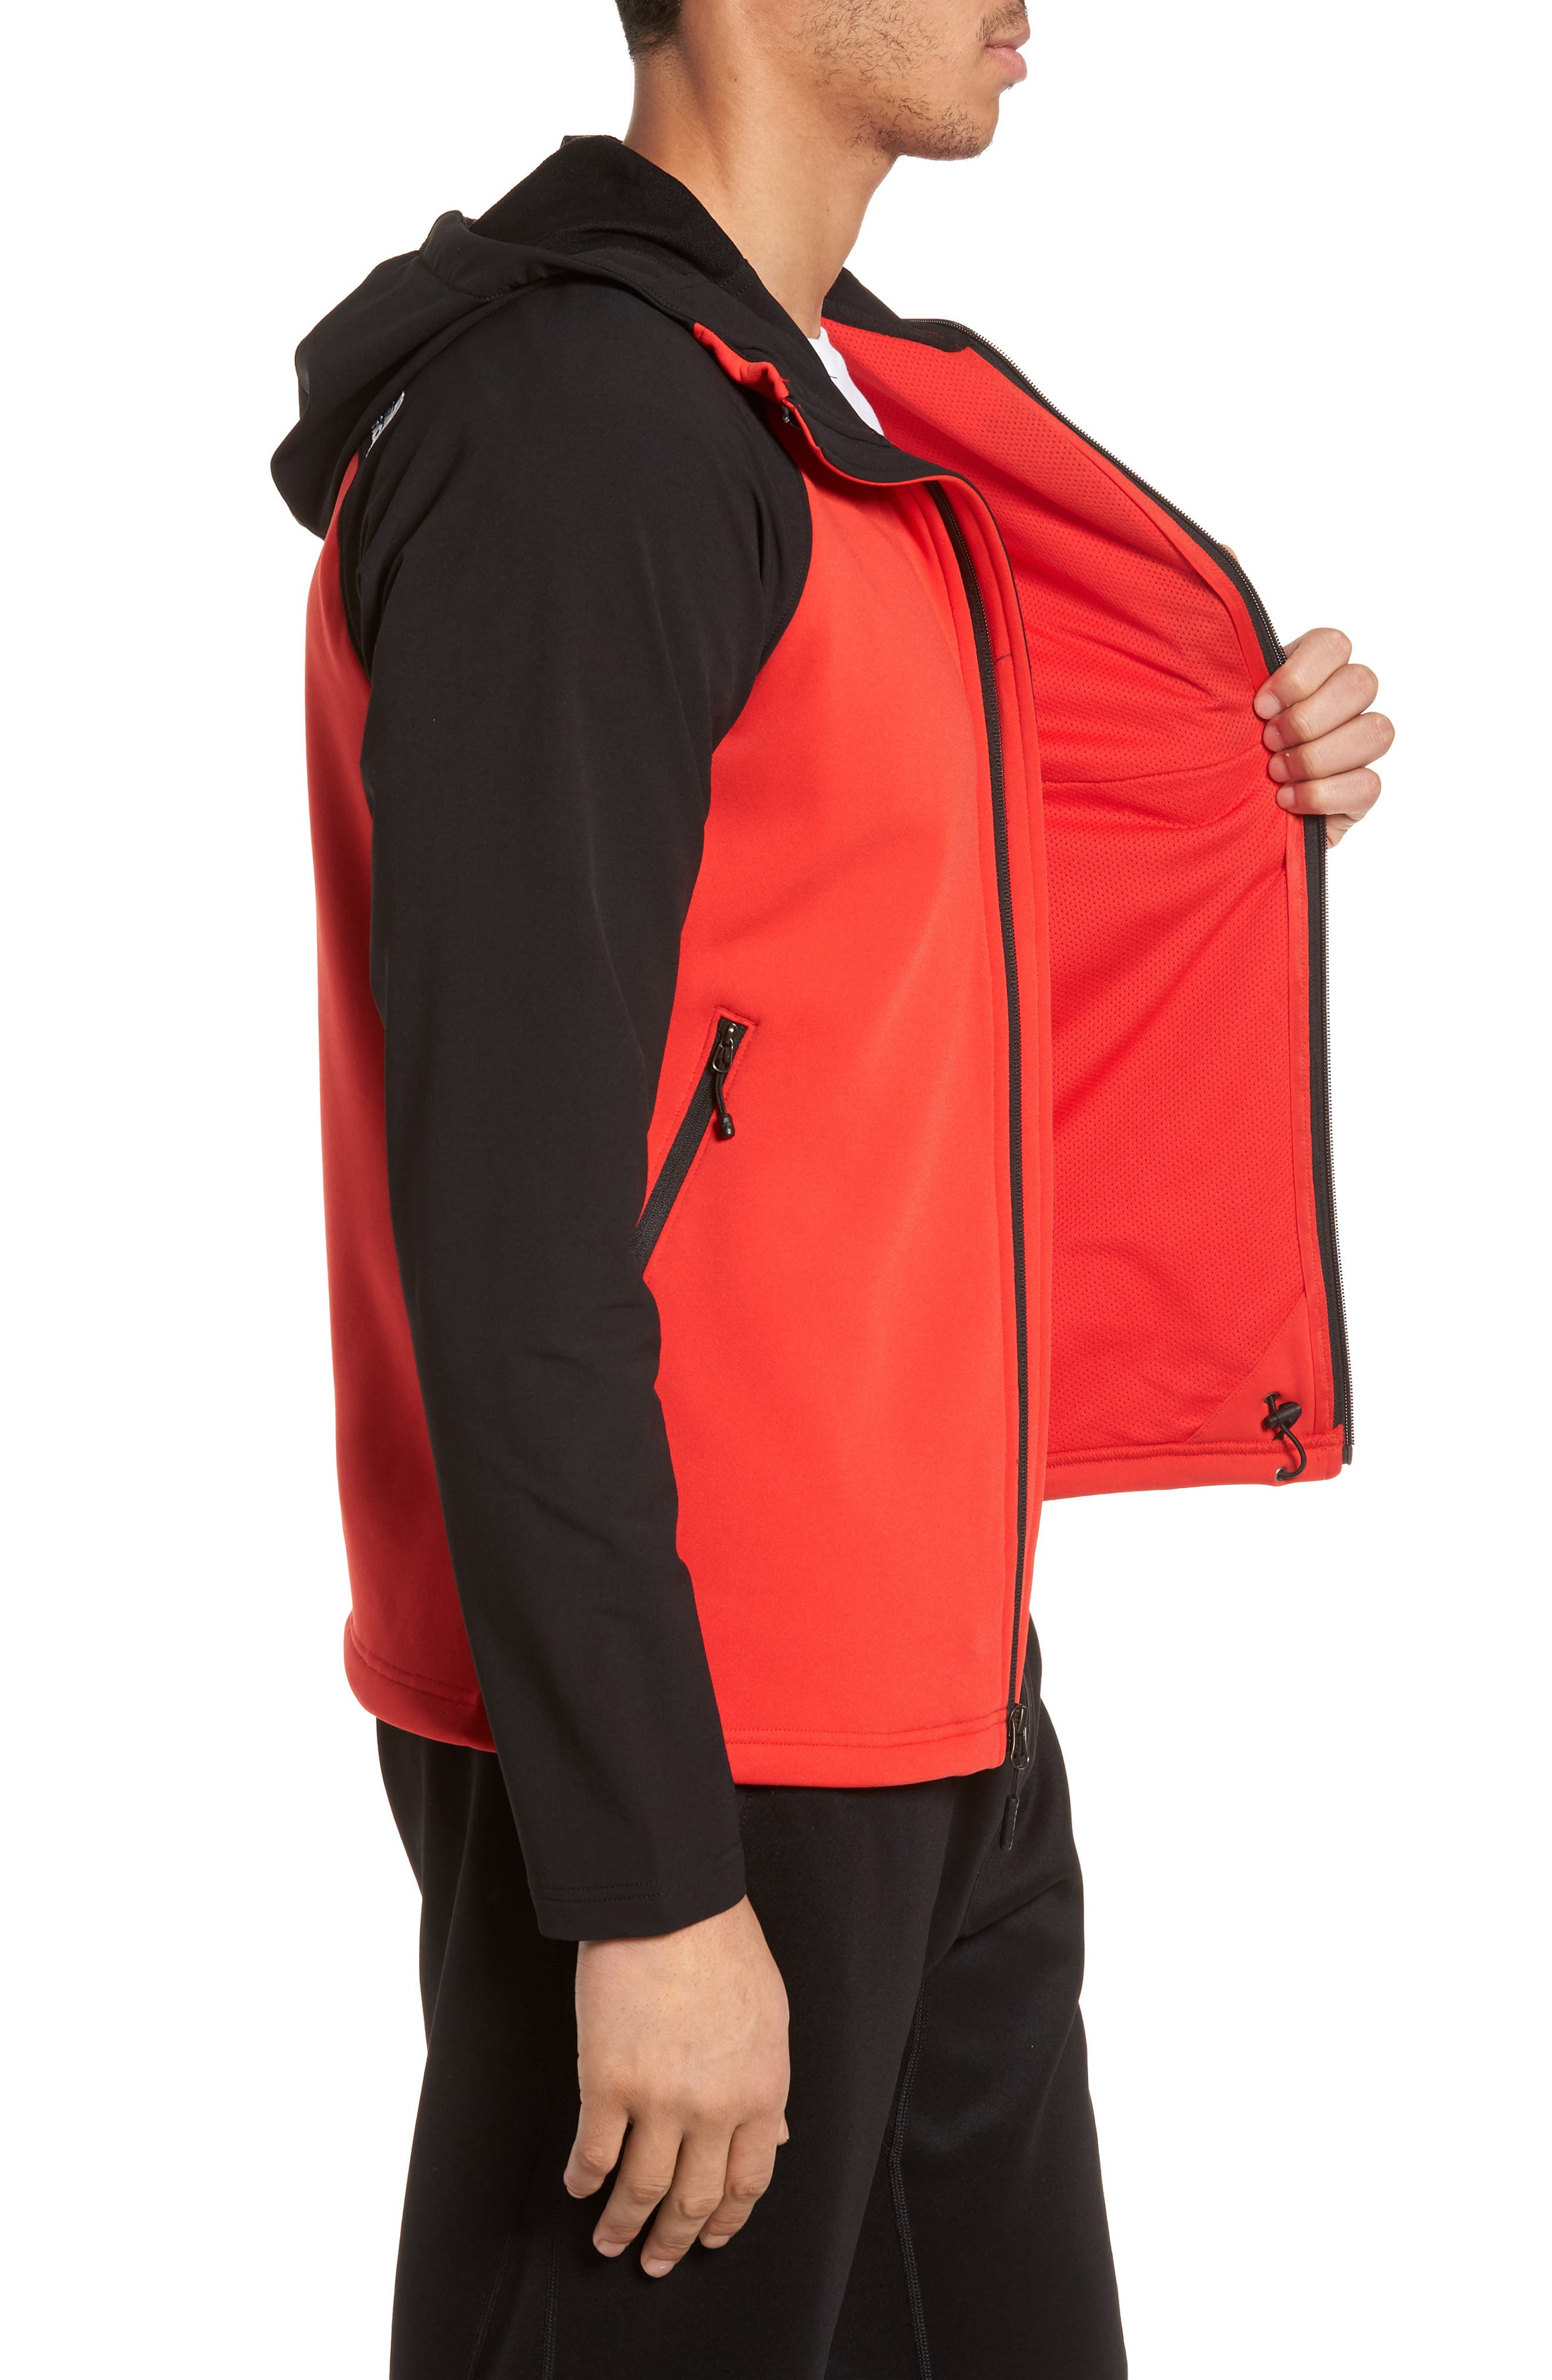 Tenacious Water Repellent Hybrid Jacket,                             Alternate thumbnail 3, color,                             High Risk Red/ Tnf Black